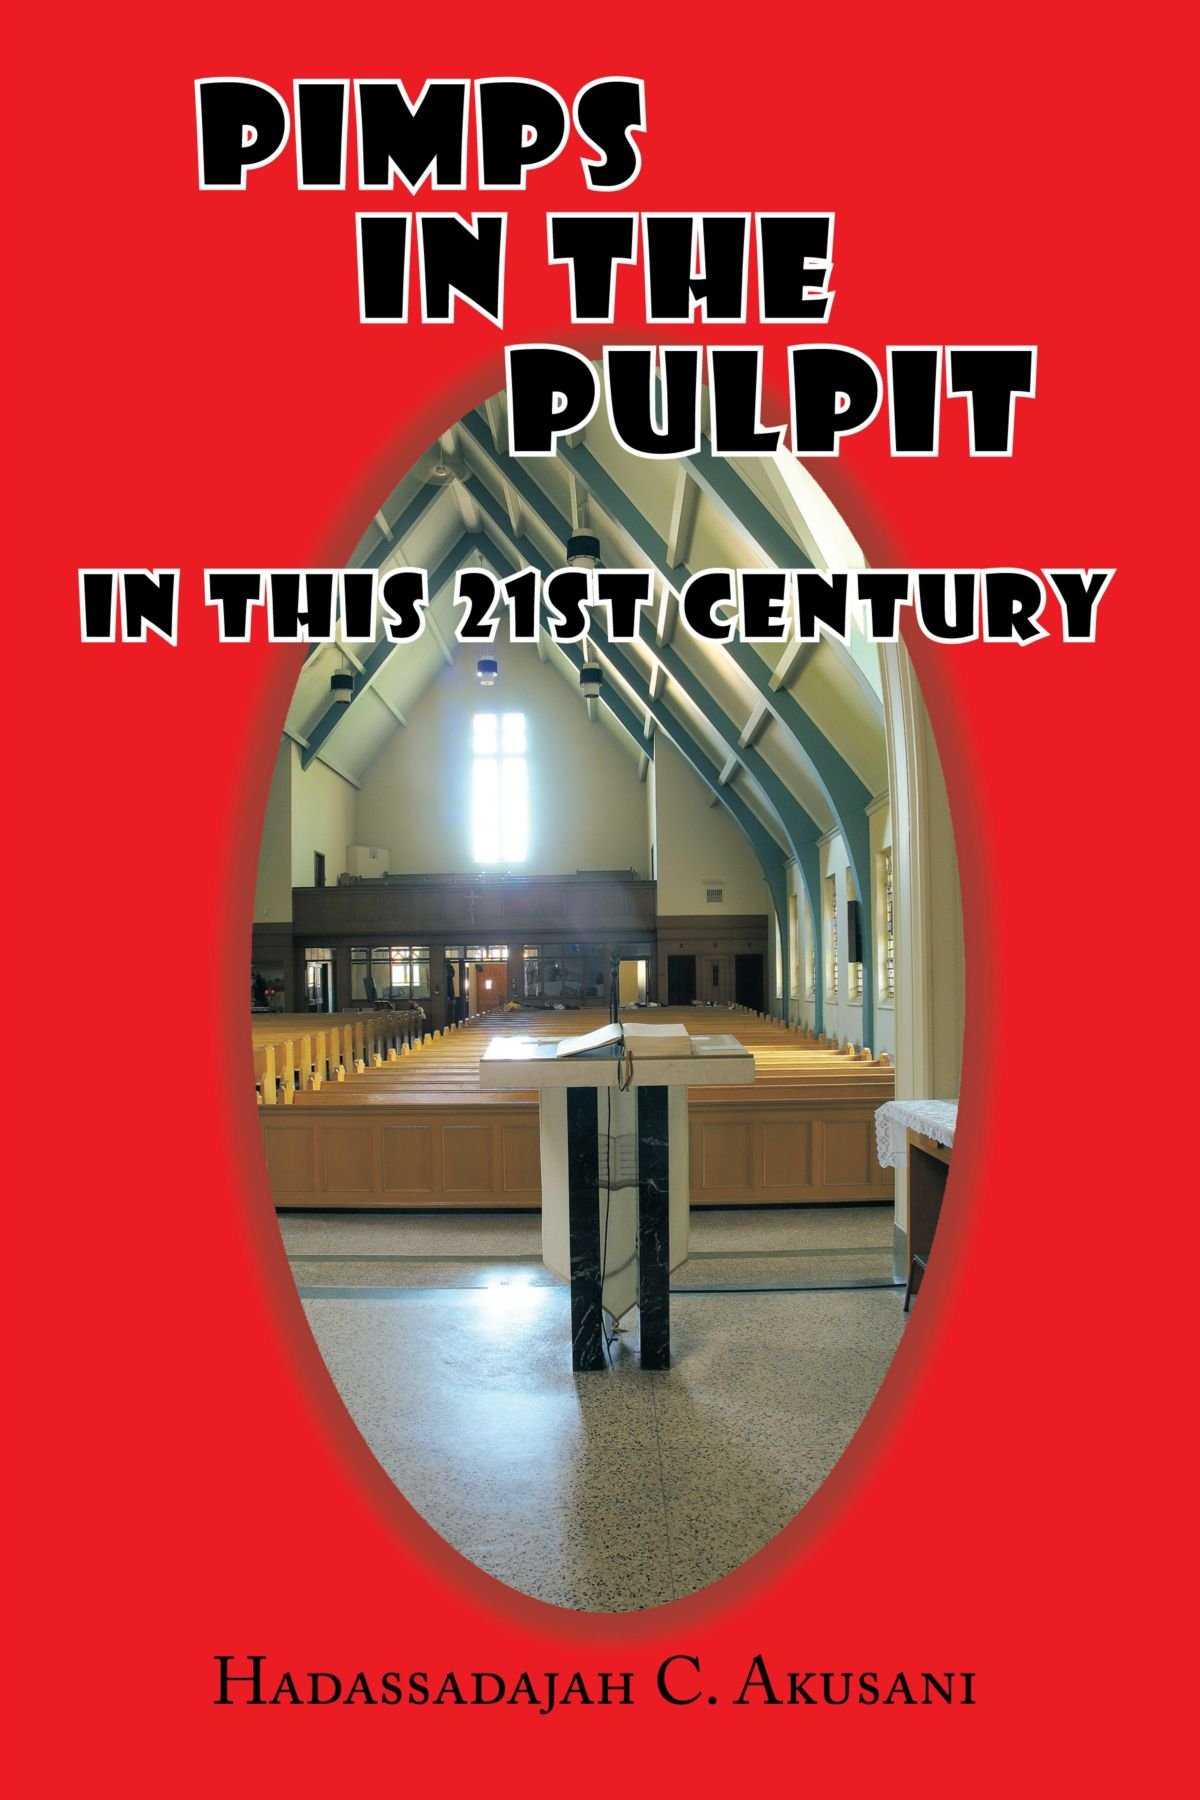 Pimps in the Pulpit: In this 21st Century pdf epub